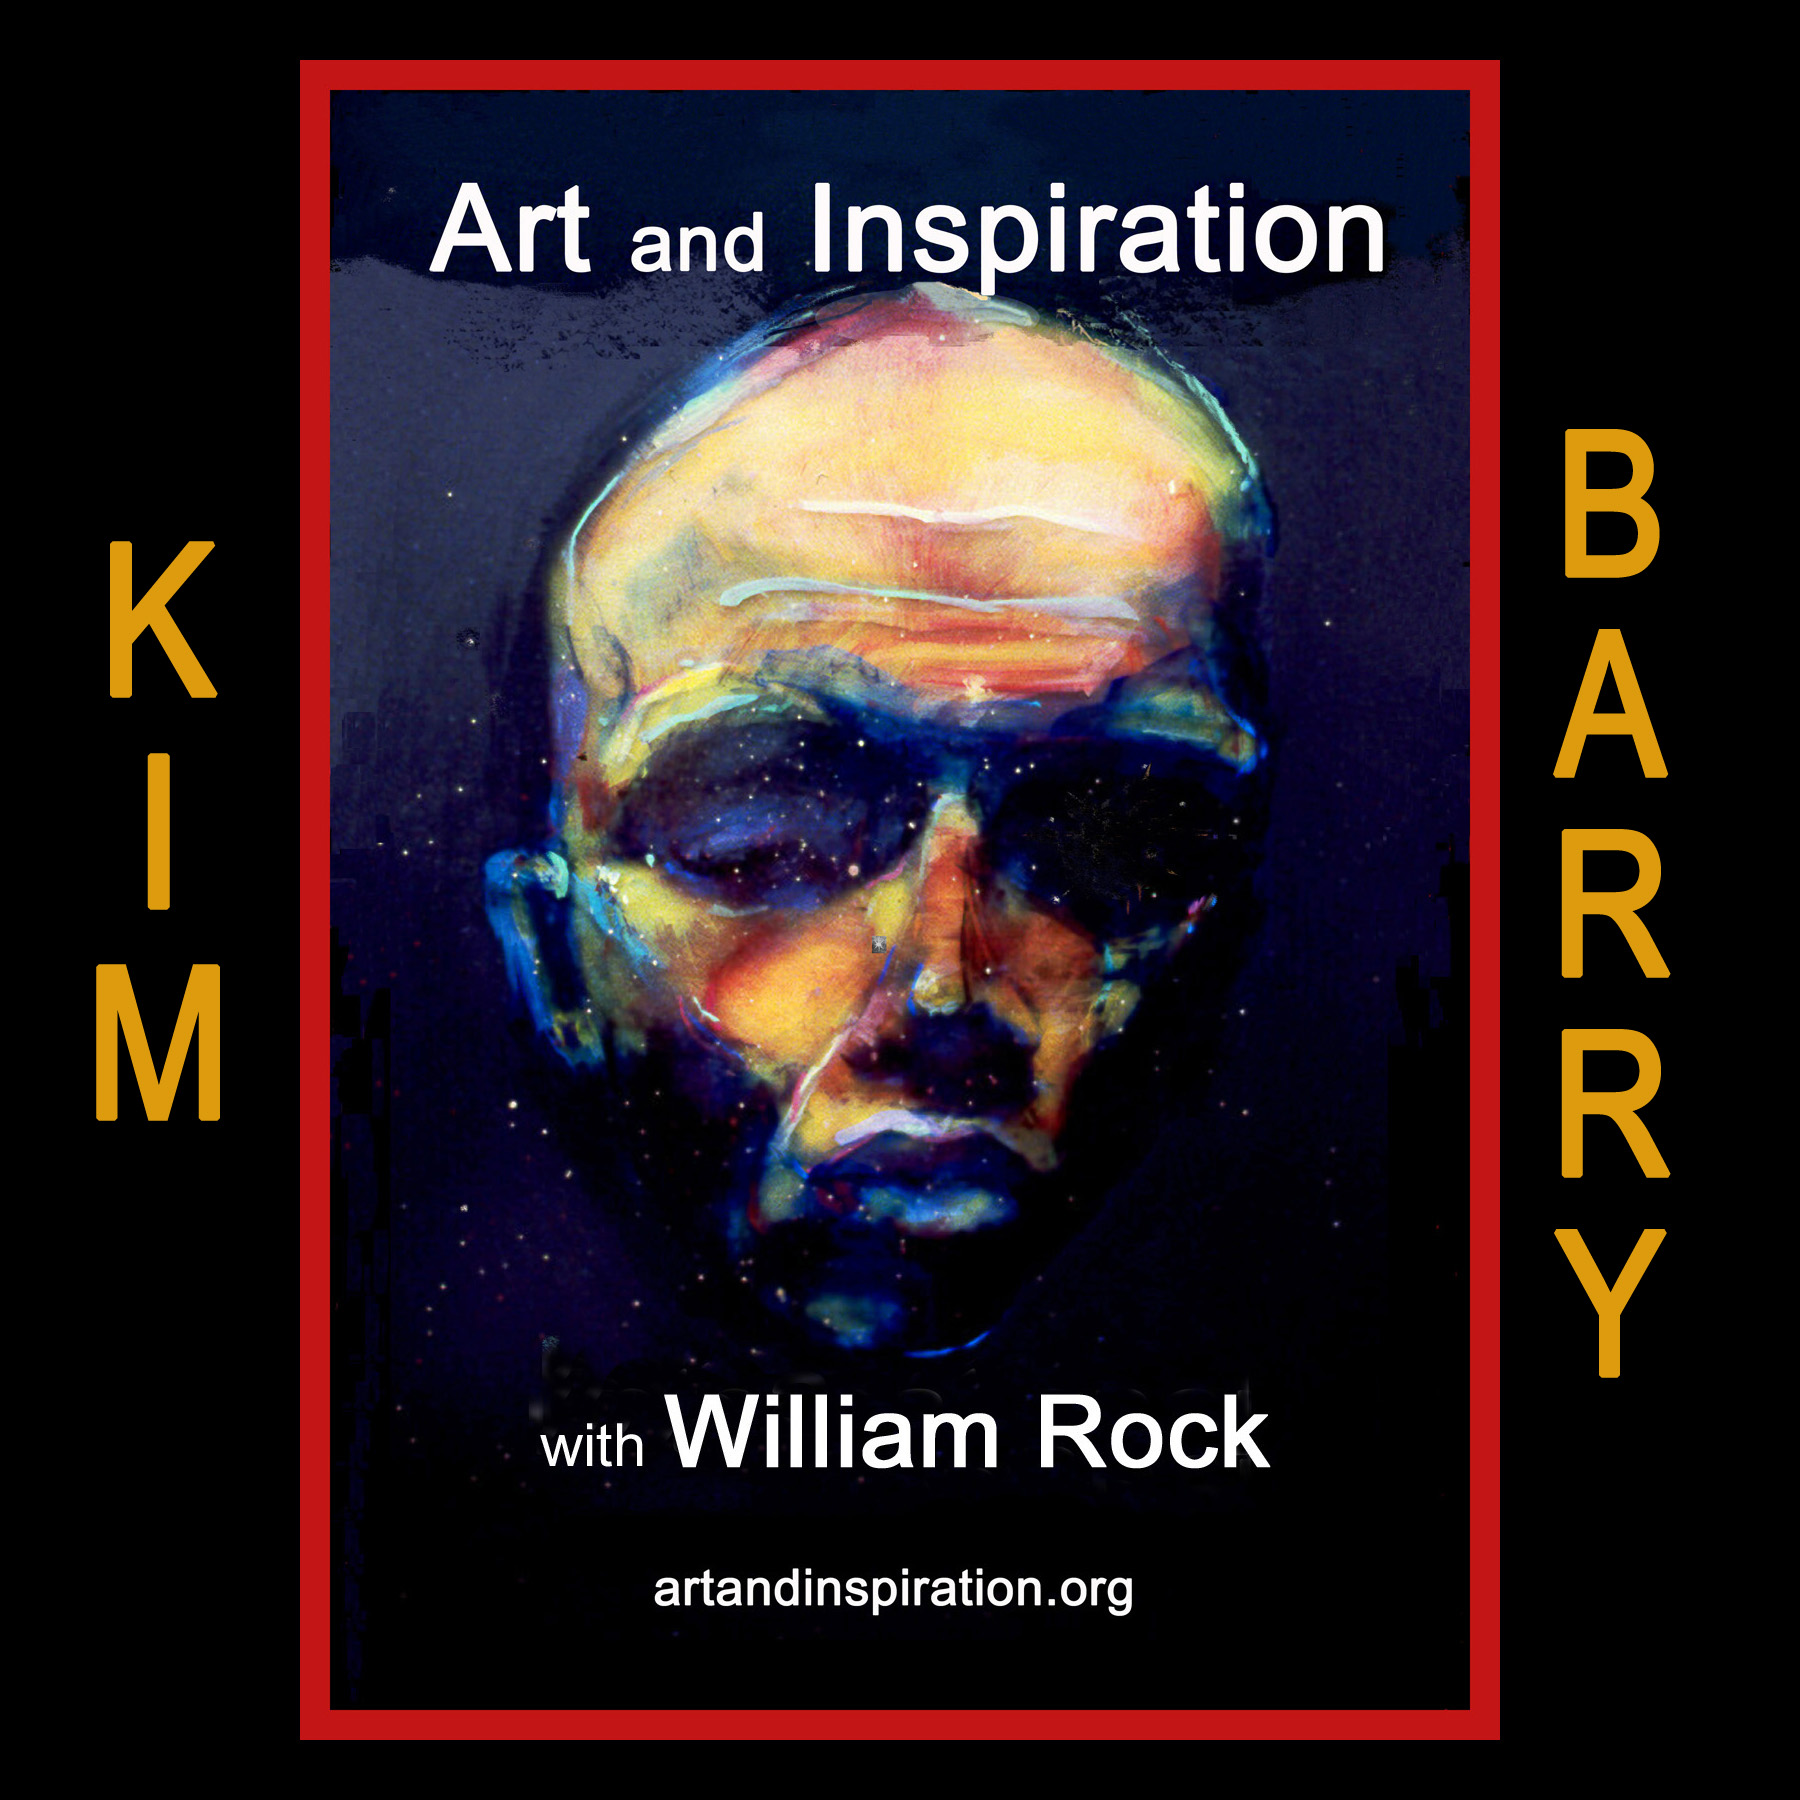 Kim Barry on Art and Inspiration with William Rock